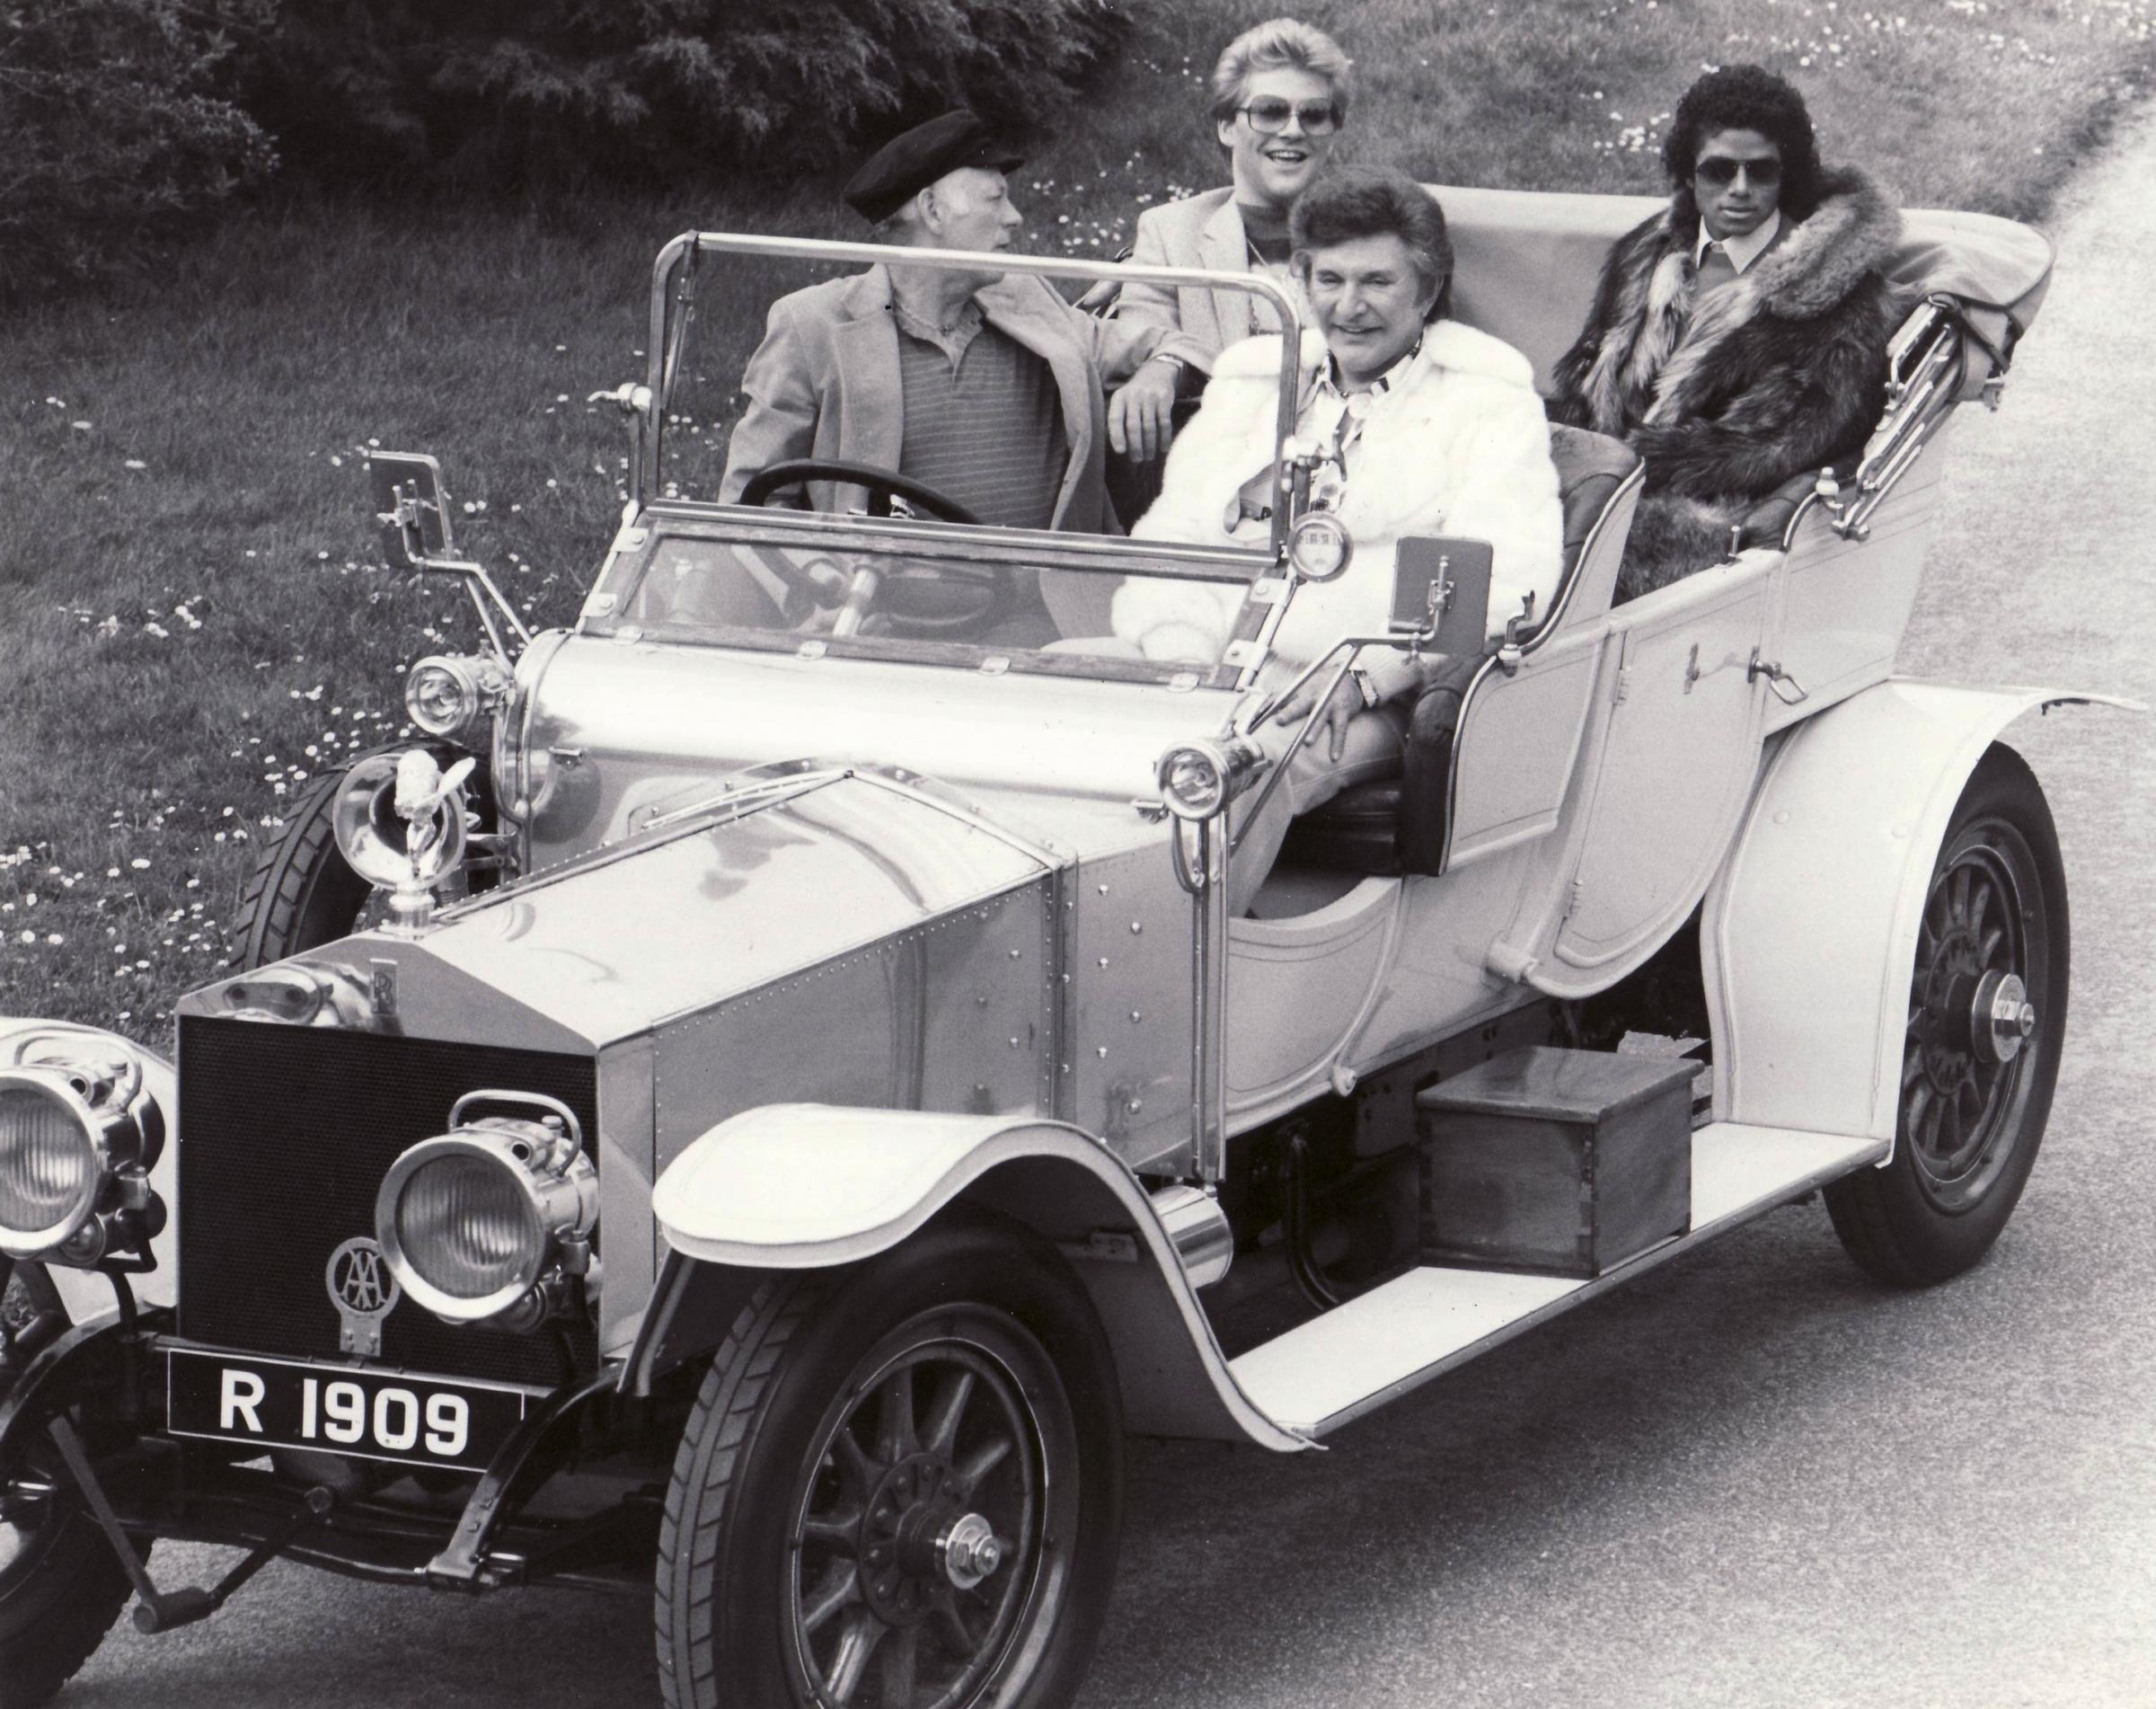 Lord Montagu at Beaulieu with Liberace and Michael Jackson in 1981